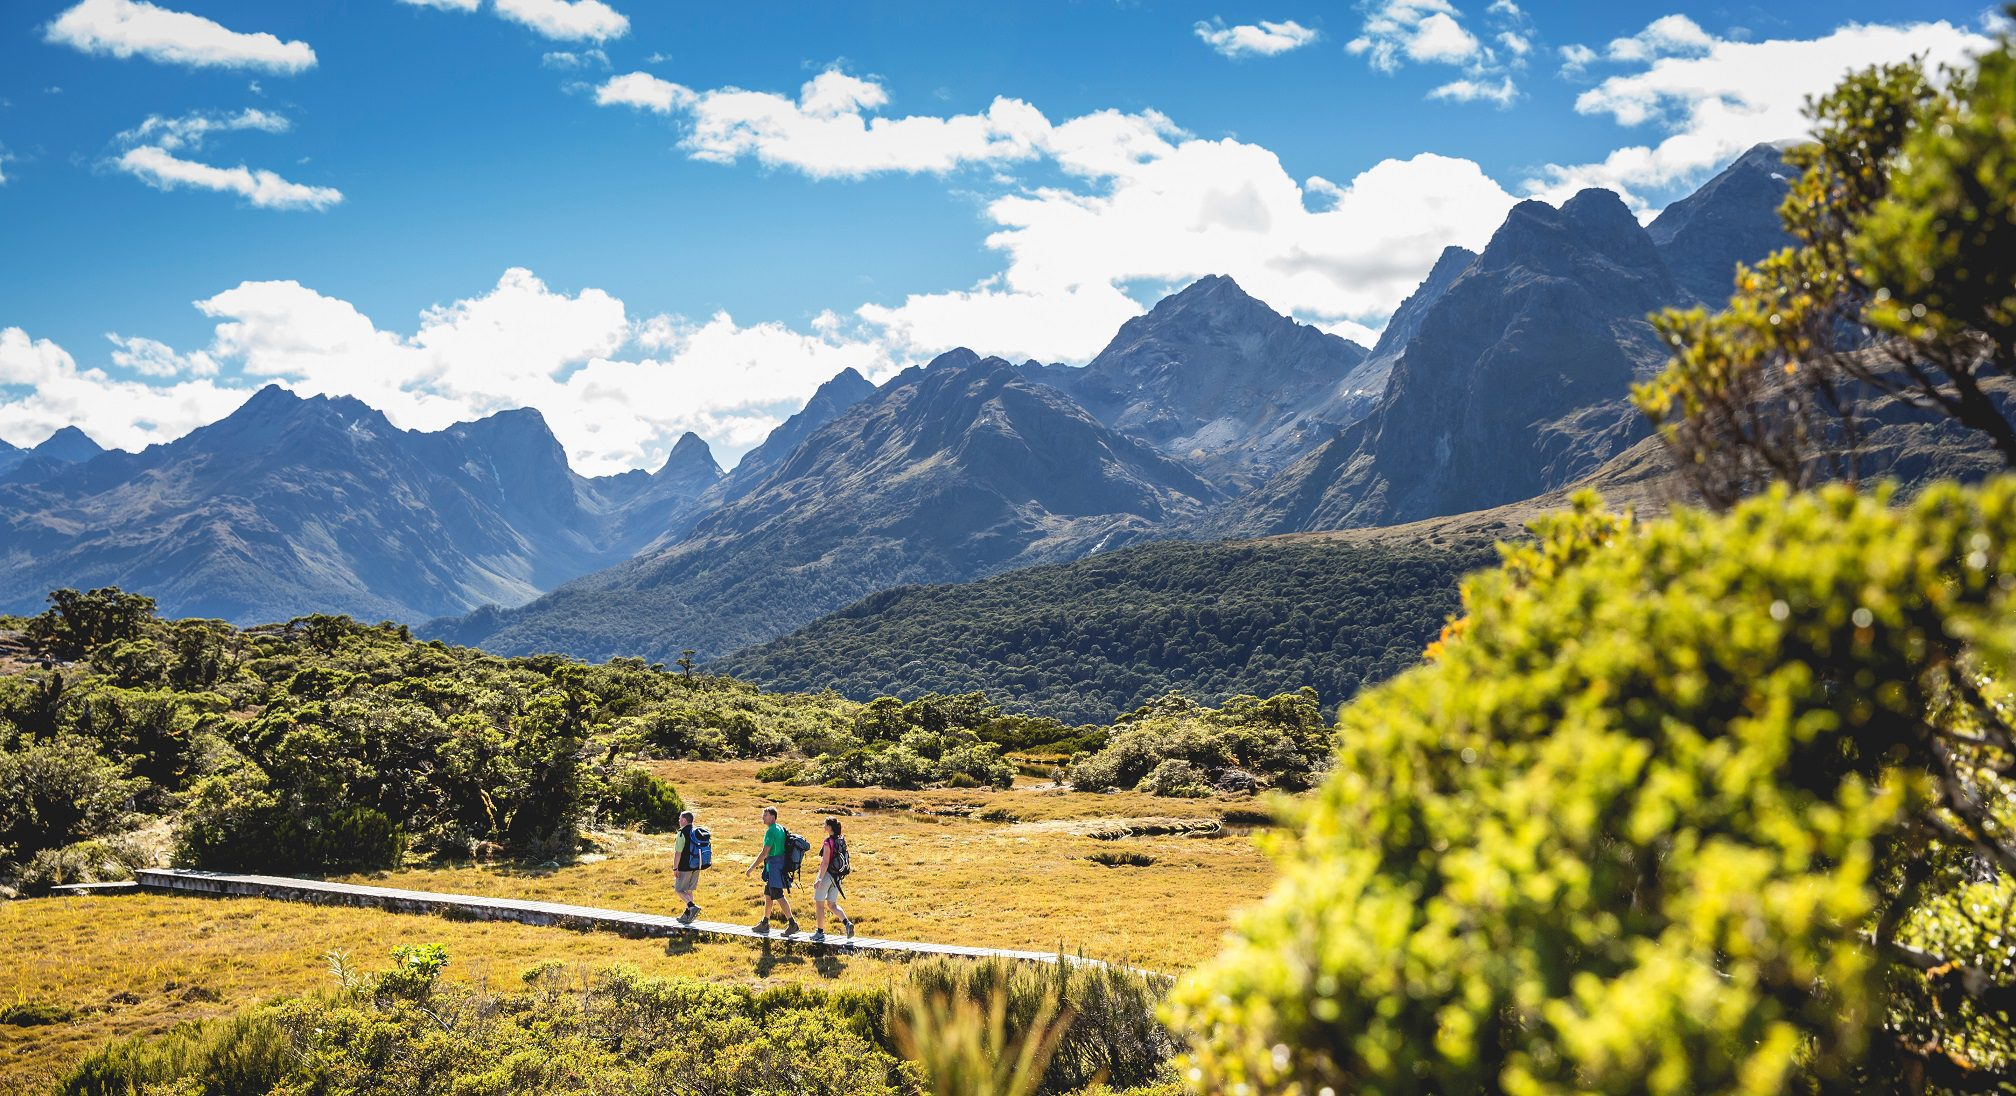 Hikers on New Zealand safari walk along the Routeburn Track with mountains in the background, taken by Fiordland Lodge